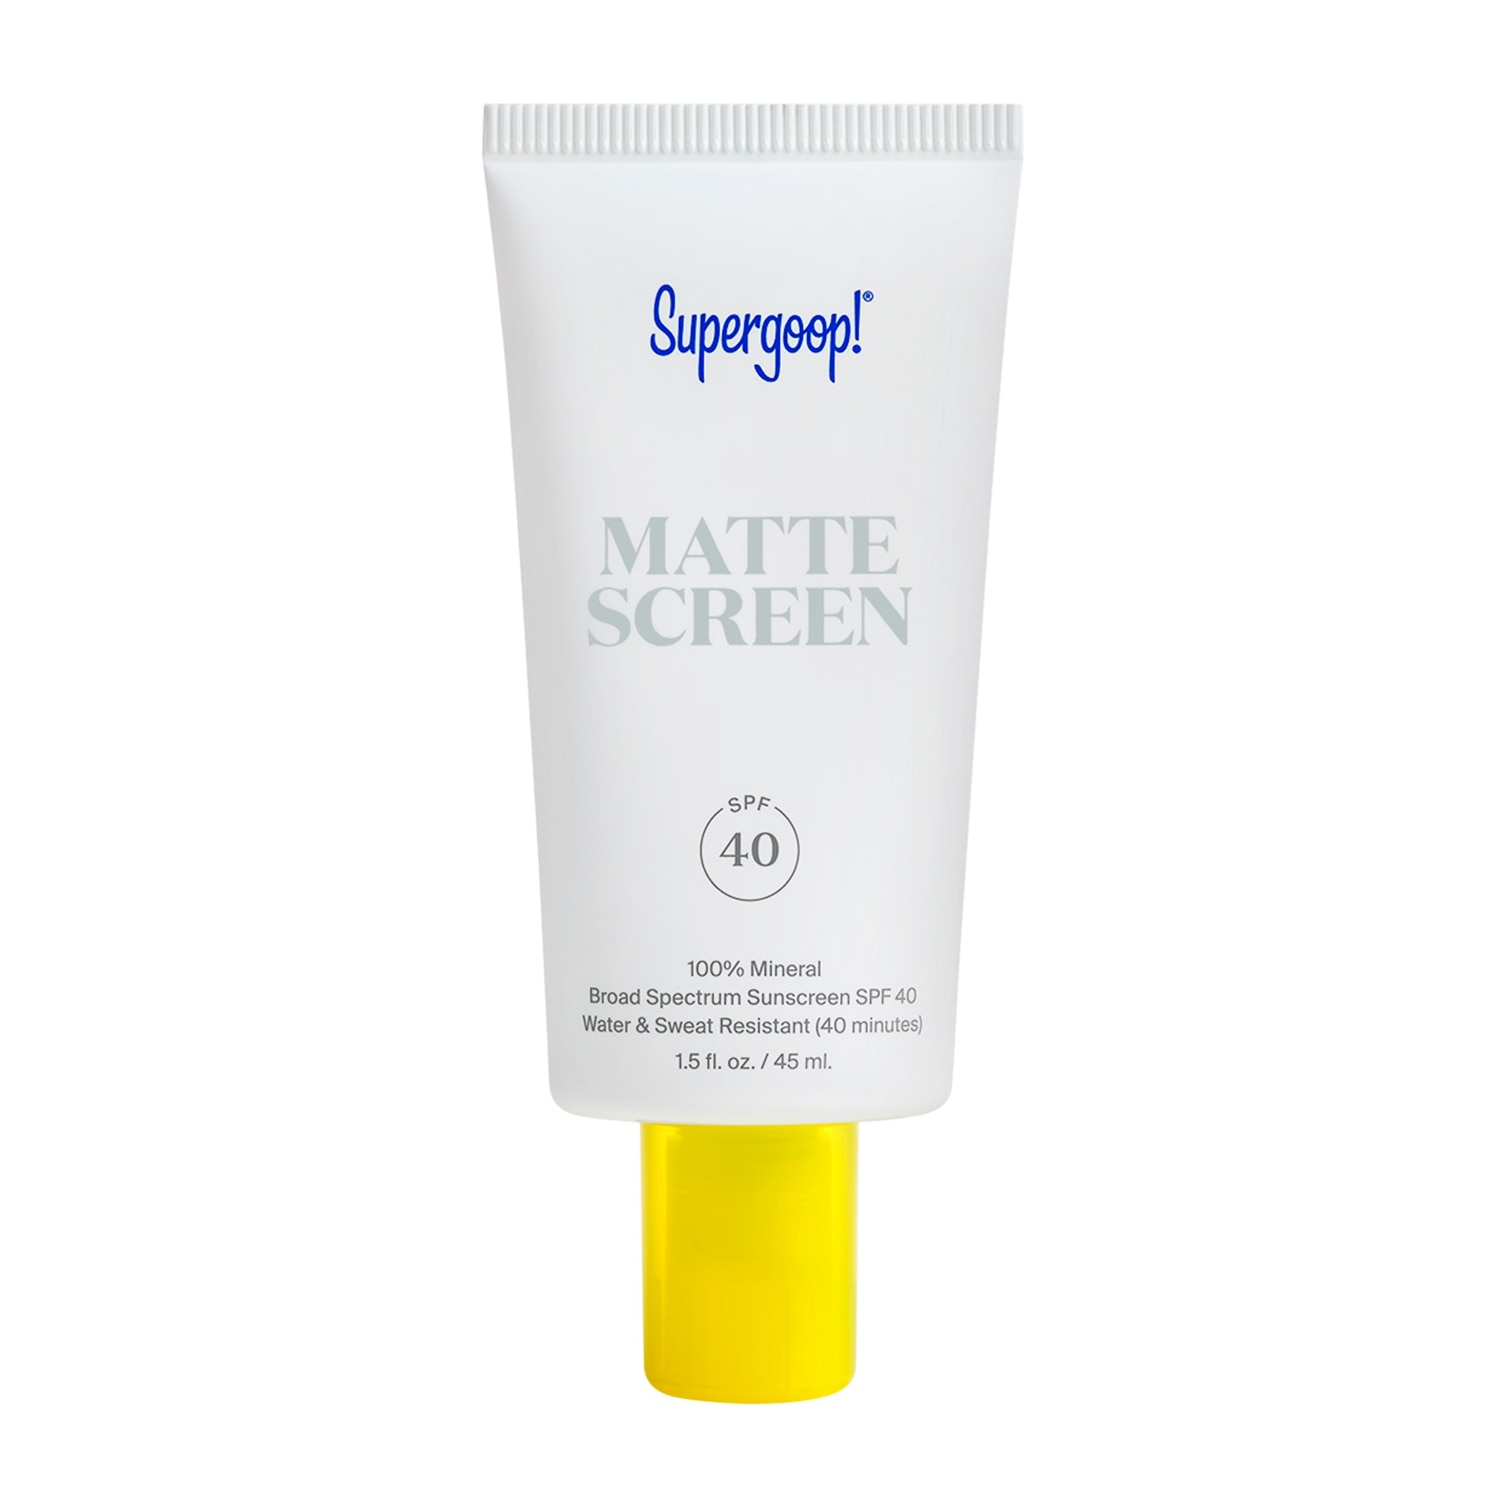 100% MINERAL SMOOTH & PORELESS MATTE SCREEN SPF 40